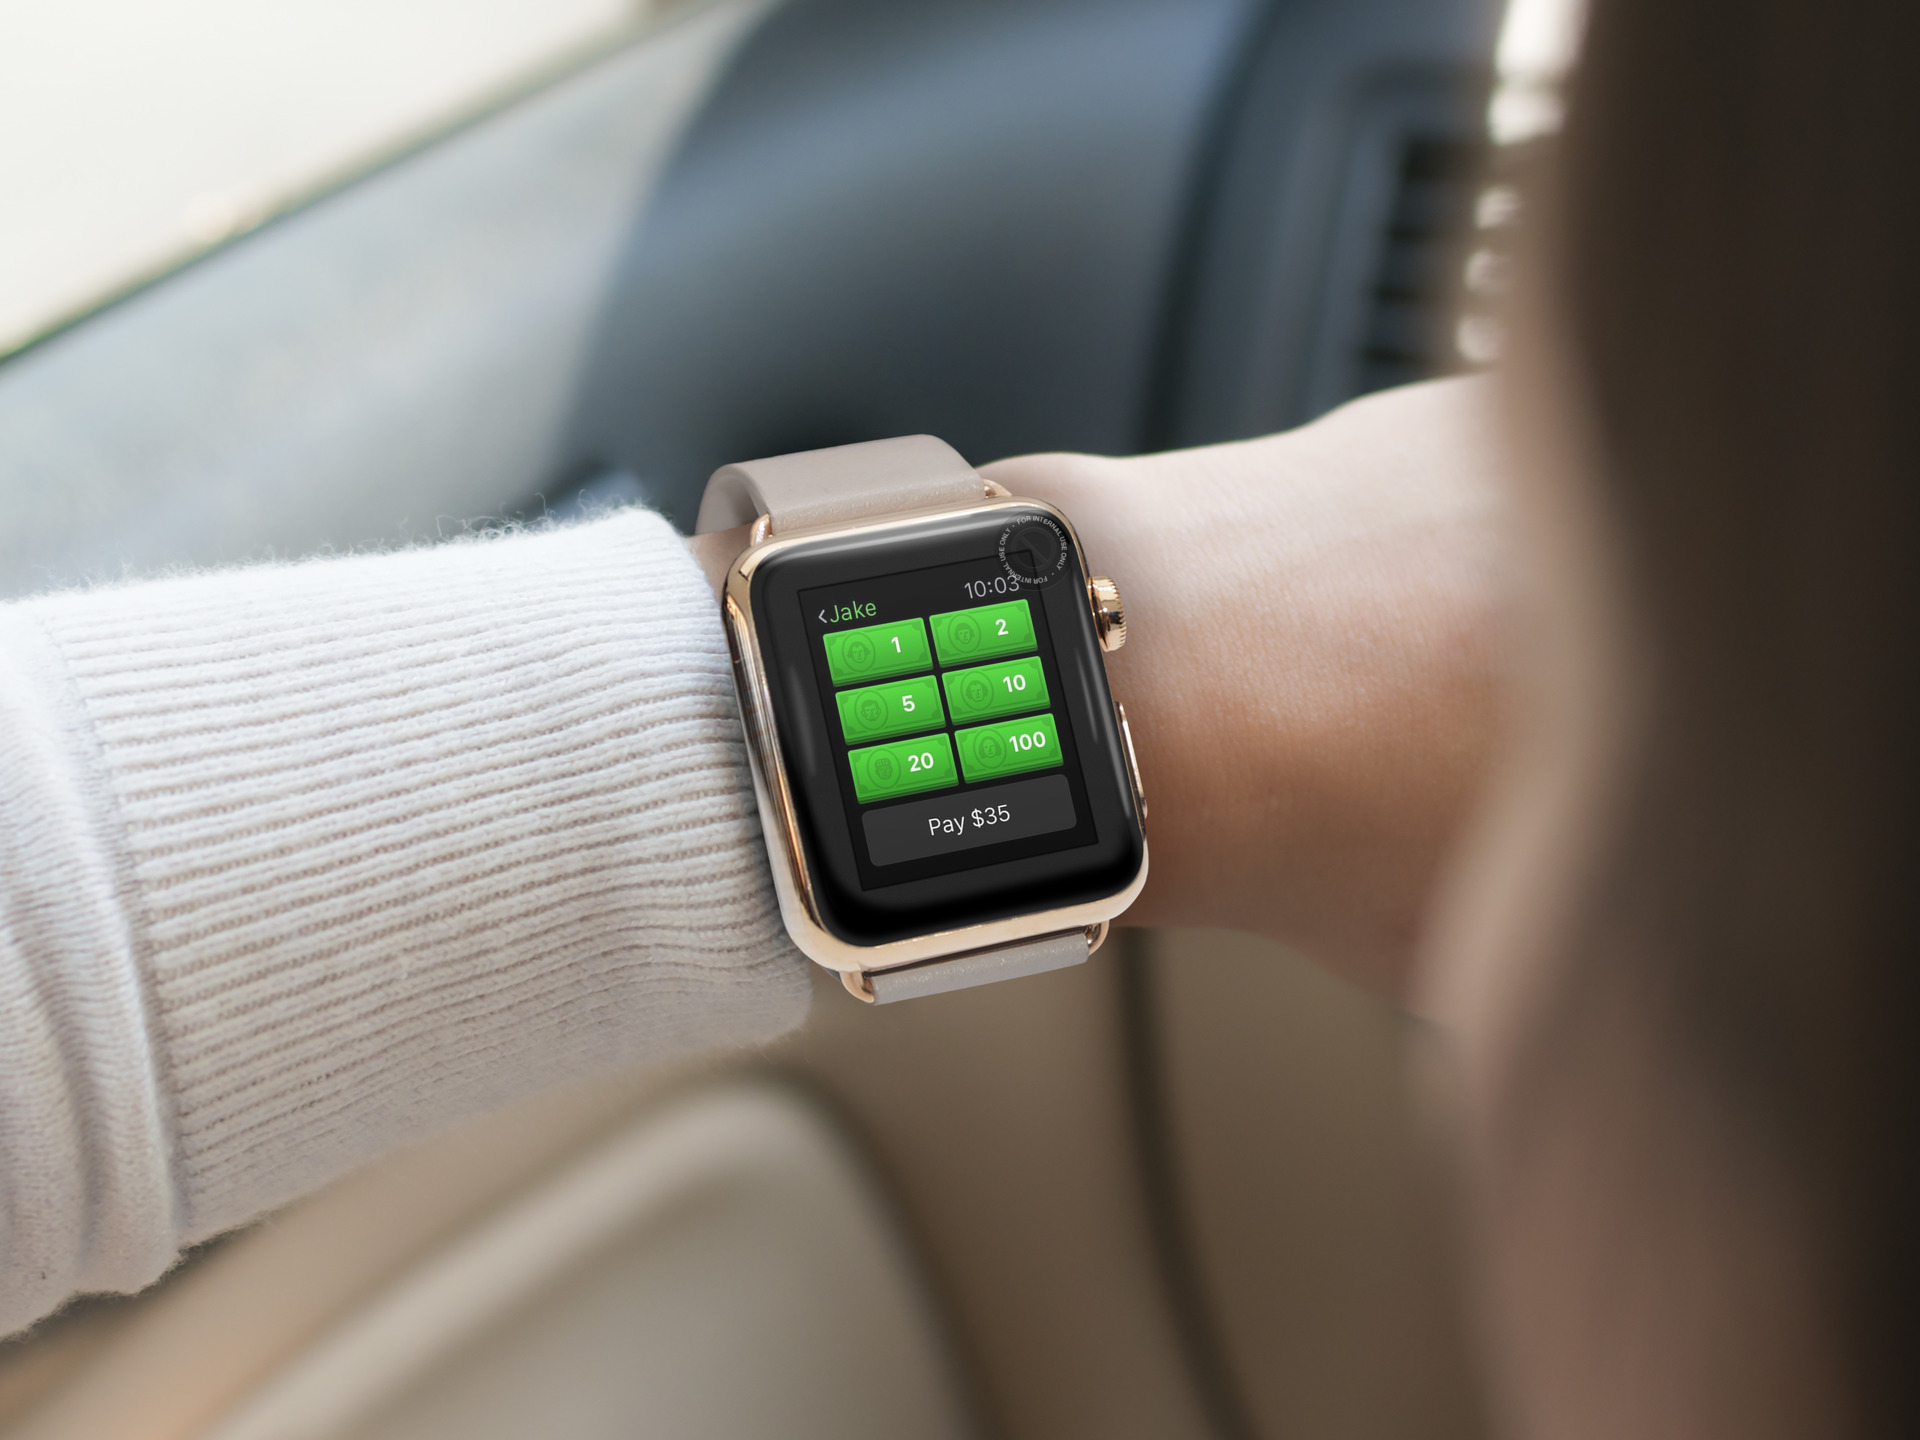 Send and receive money on your Apple Watch with Square Cash